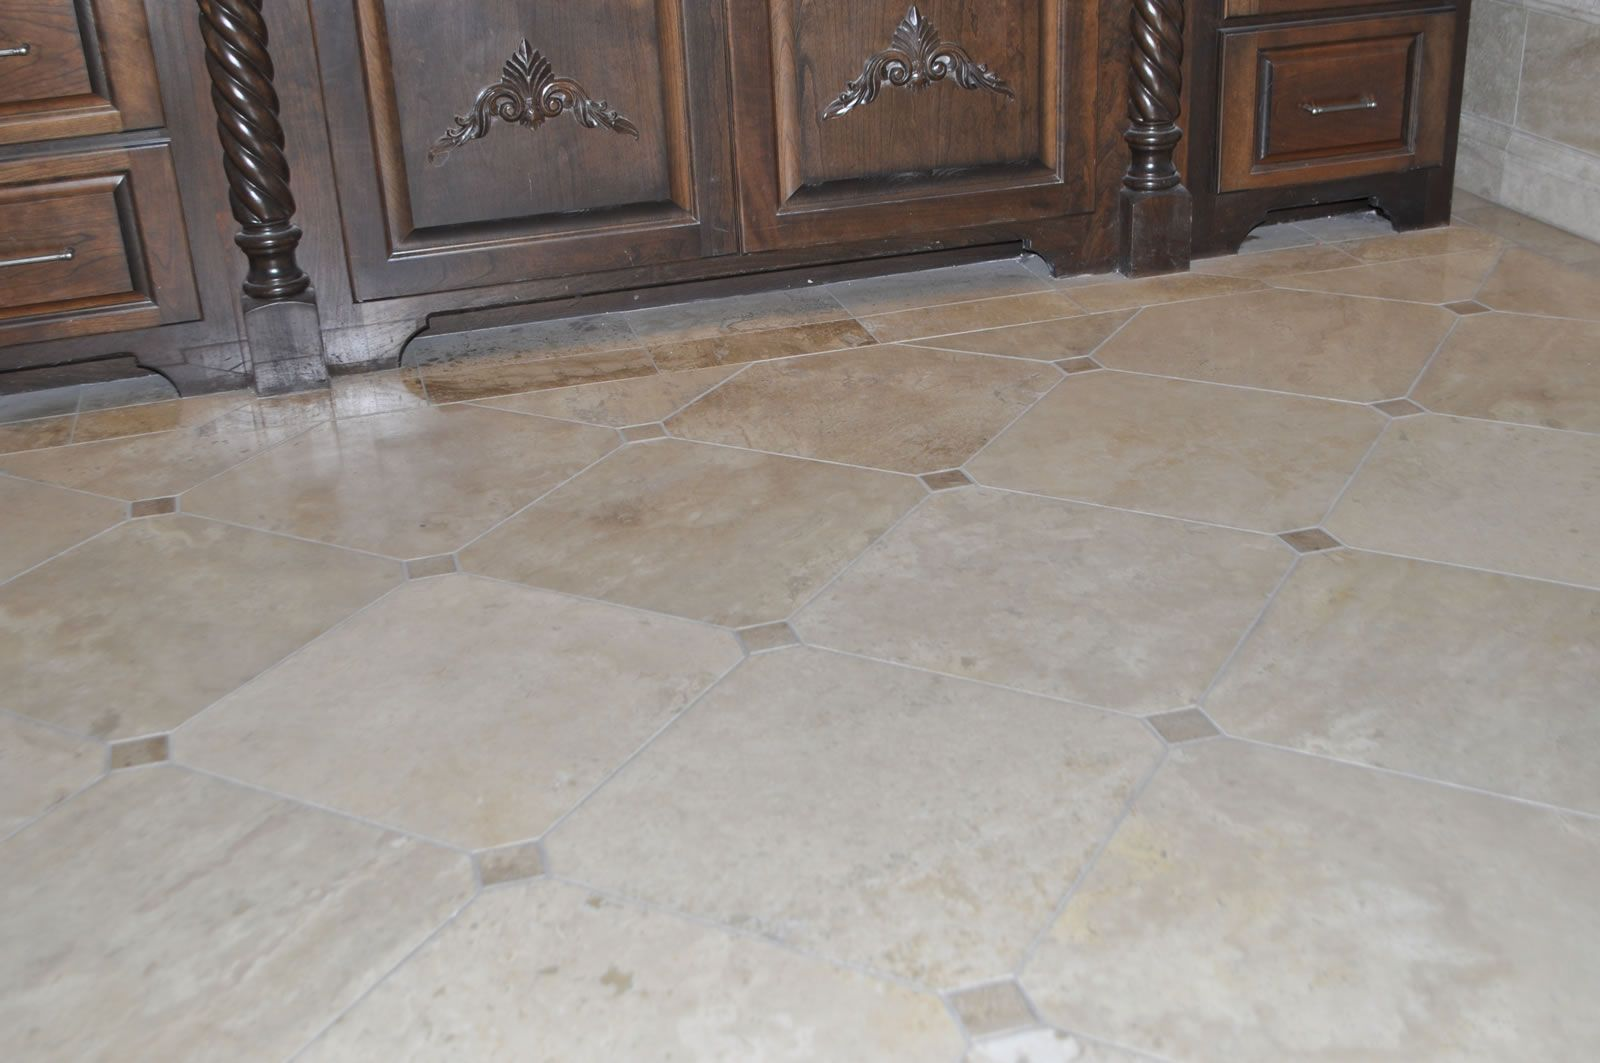 Ceramic Kitchen Tile Flooring Porcelain Tile In Living Room Ceramic Porcelain Stone Mosaic